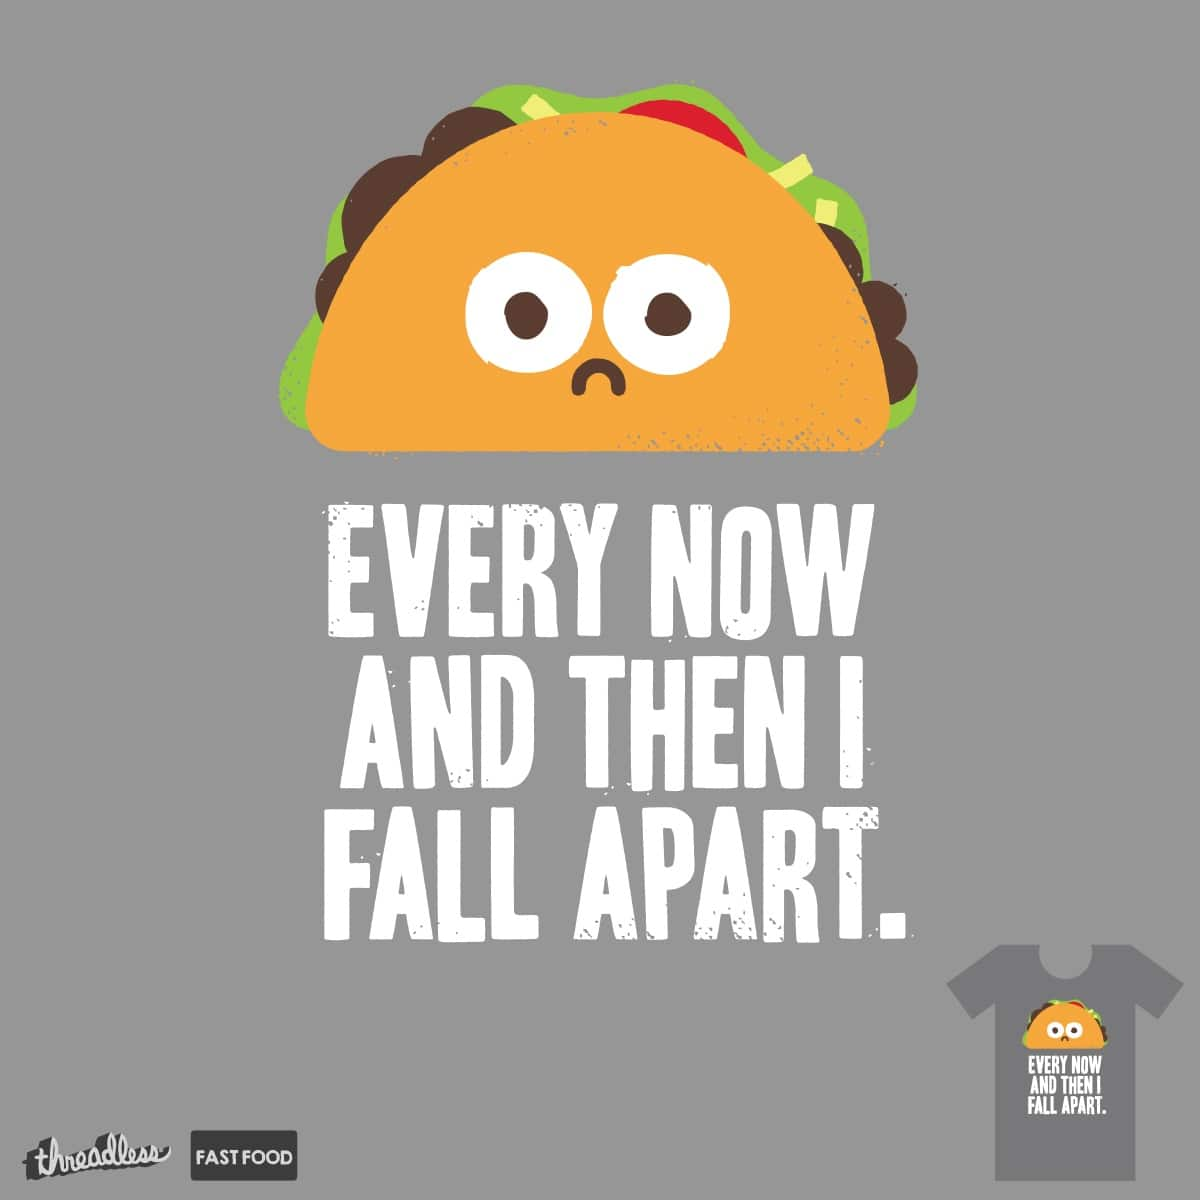 Taco Eclipse of the Heart by DRO72 on Threadless